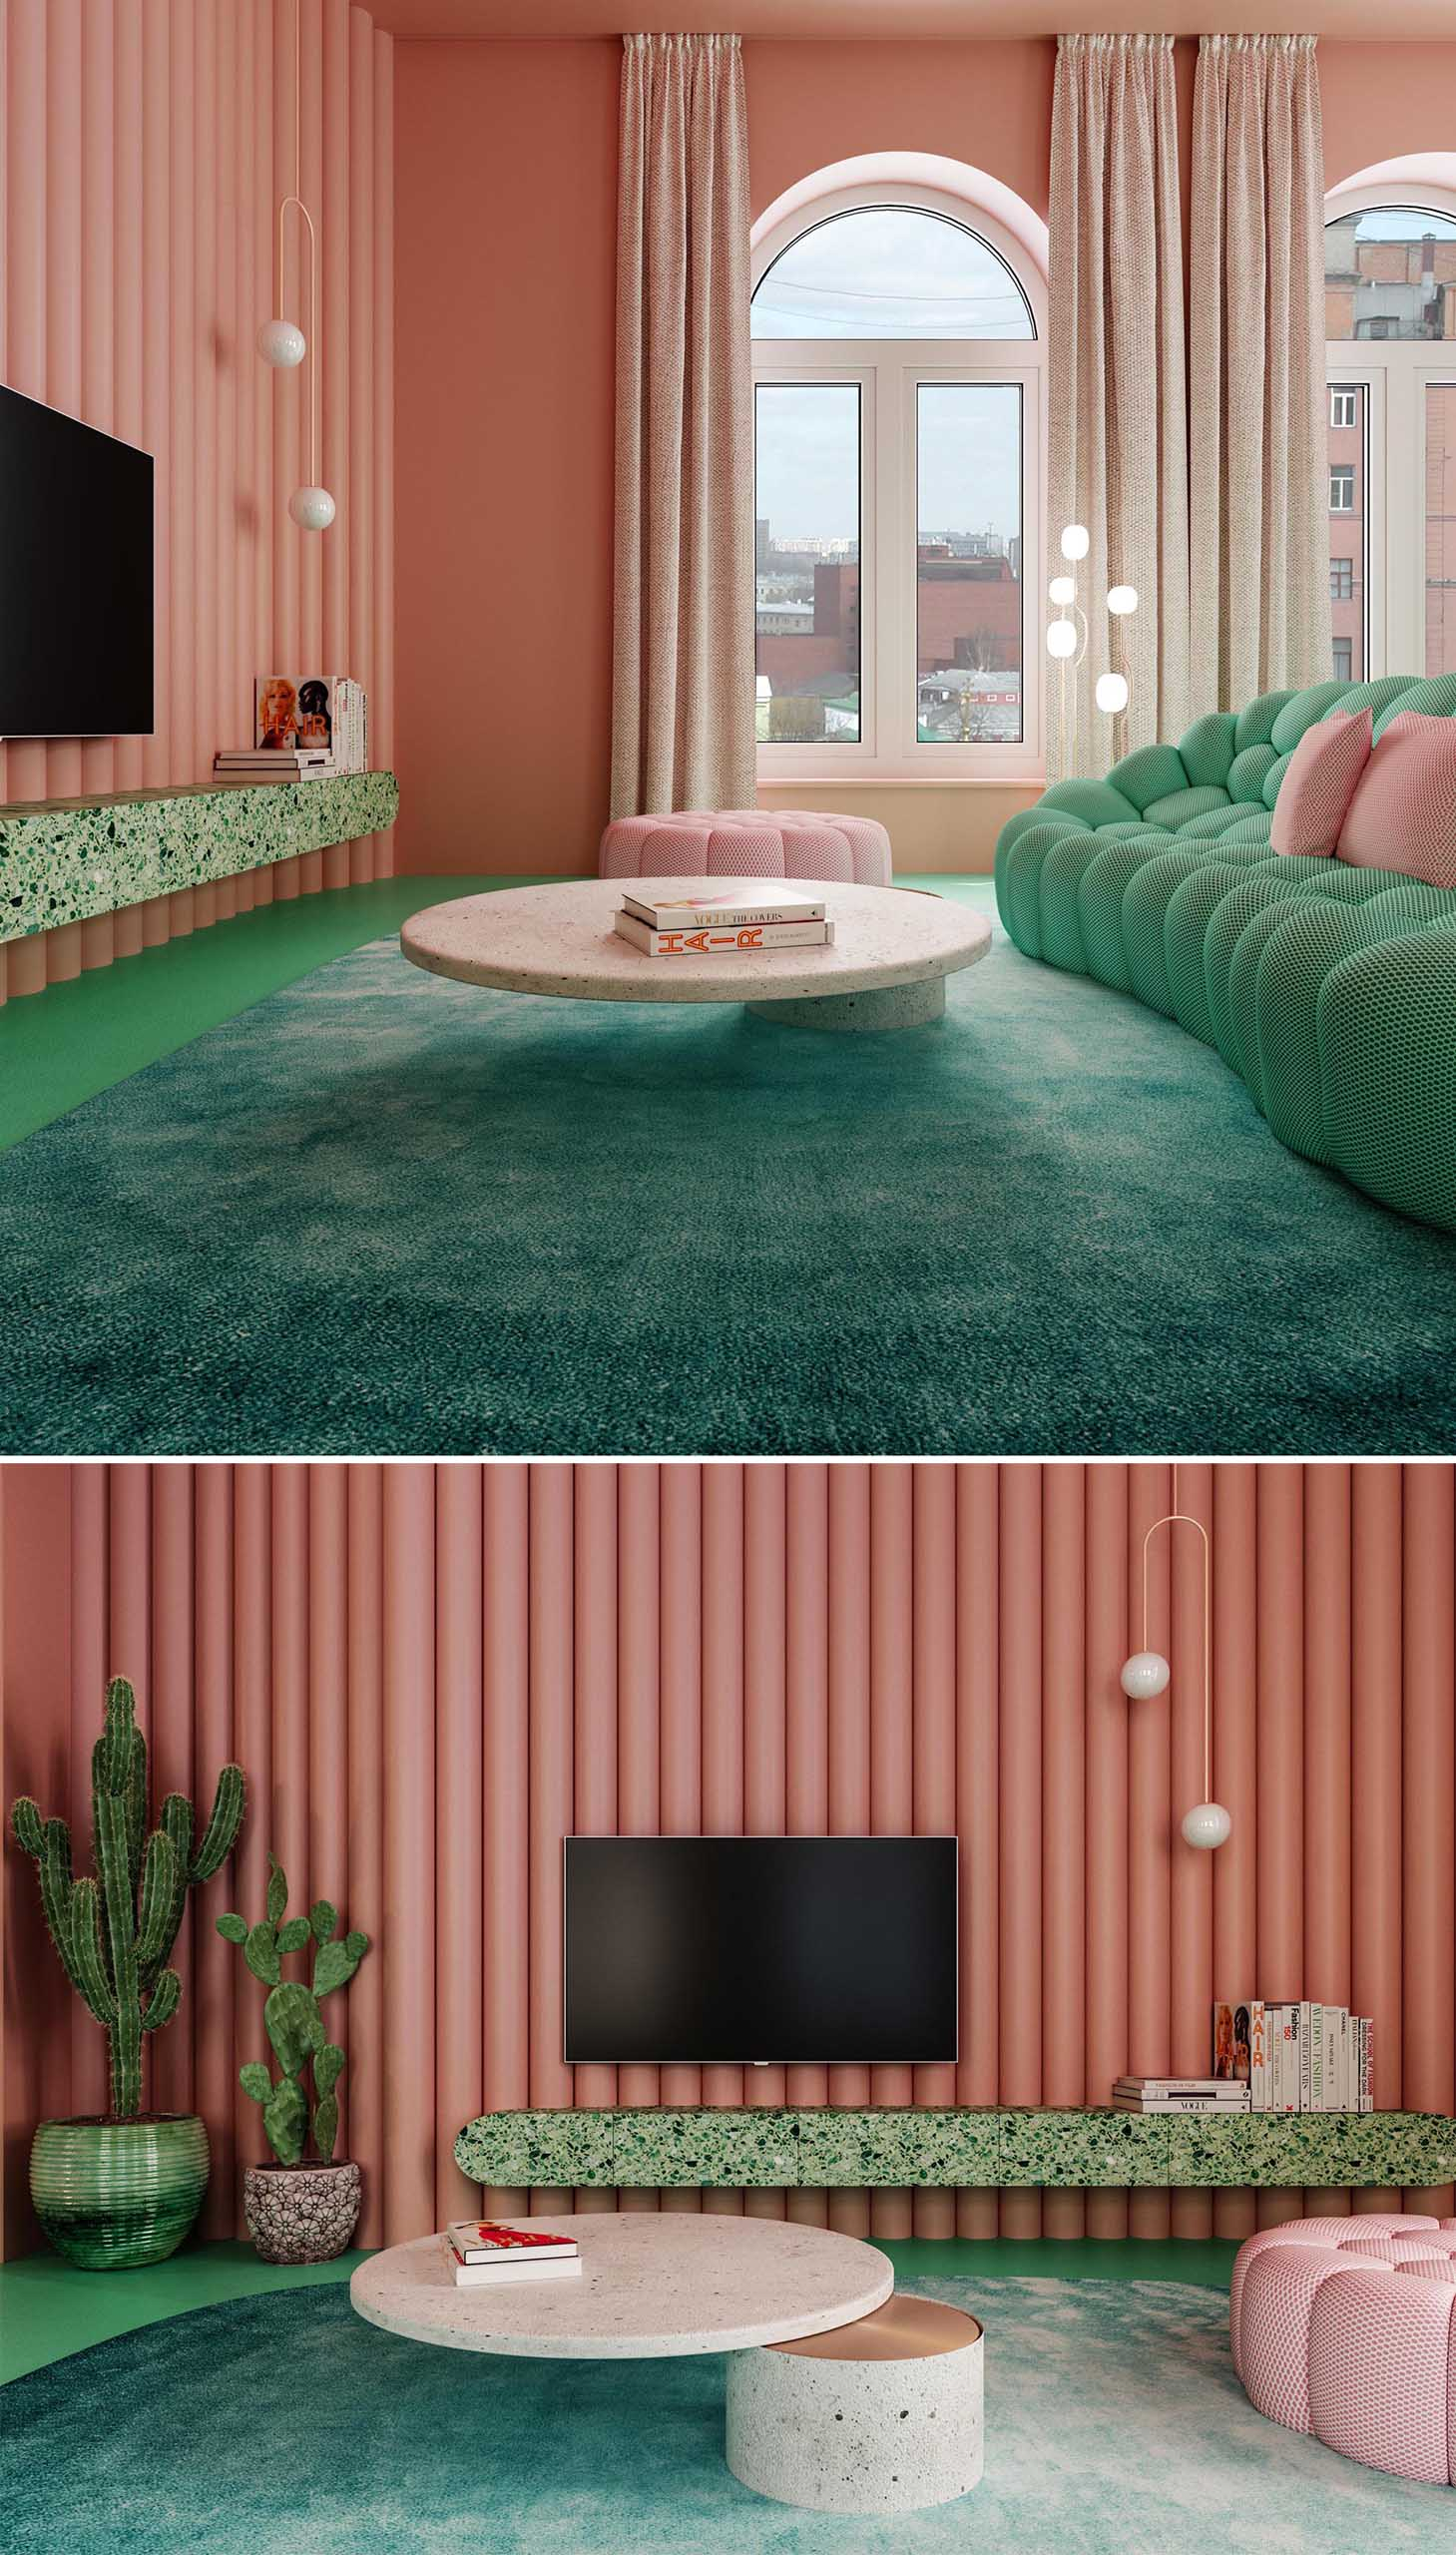 This colorful living room is defined in the open plan interior by the large dark green rug. The accent wall behind the TV adds texture to the space and is made from painted polyurethane cylinders. A custom coffee table designed by Dmitry Reutov, is made from concrete and copper.